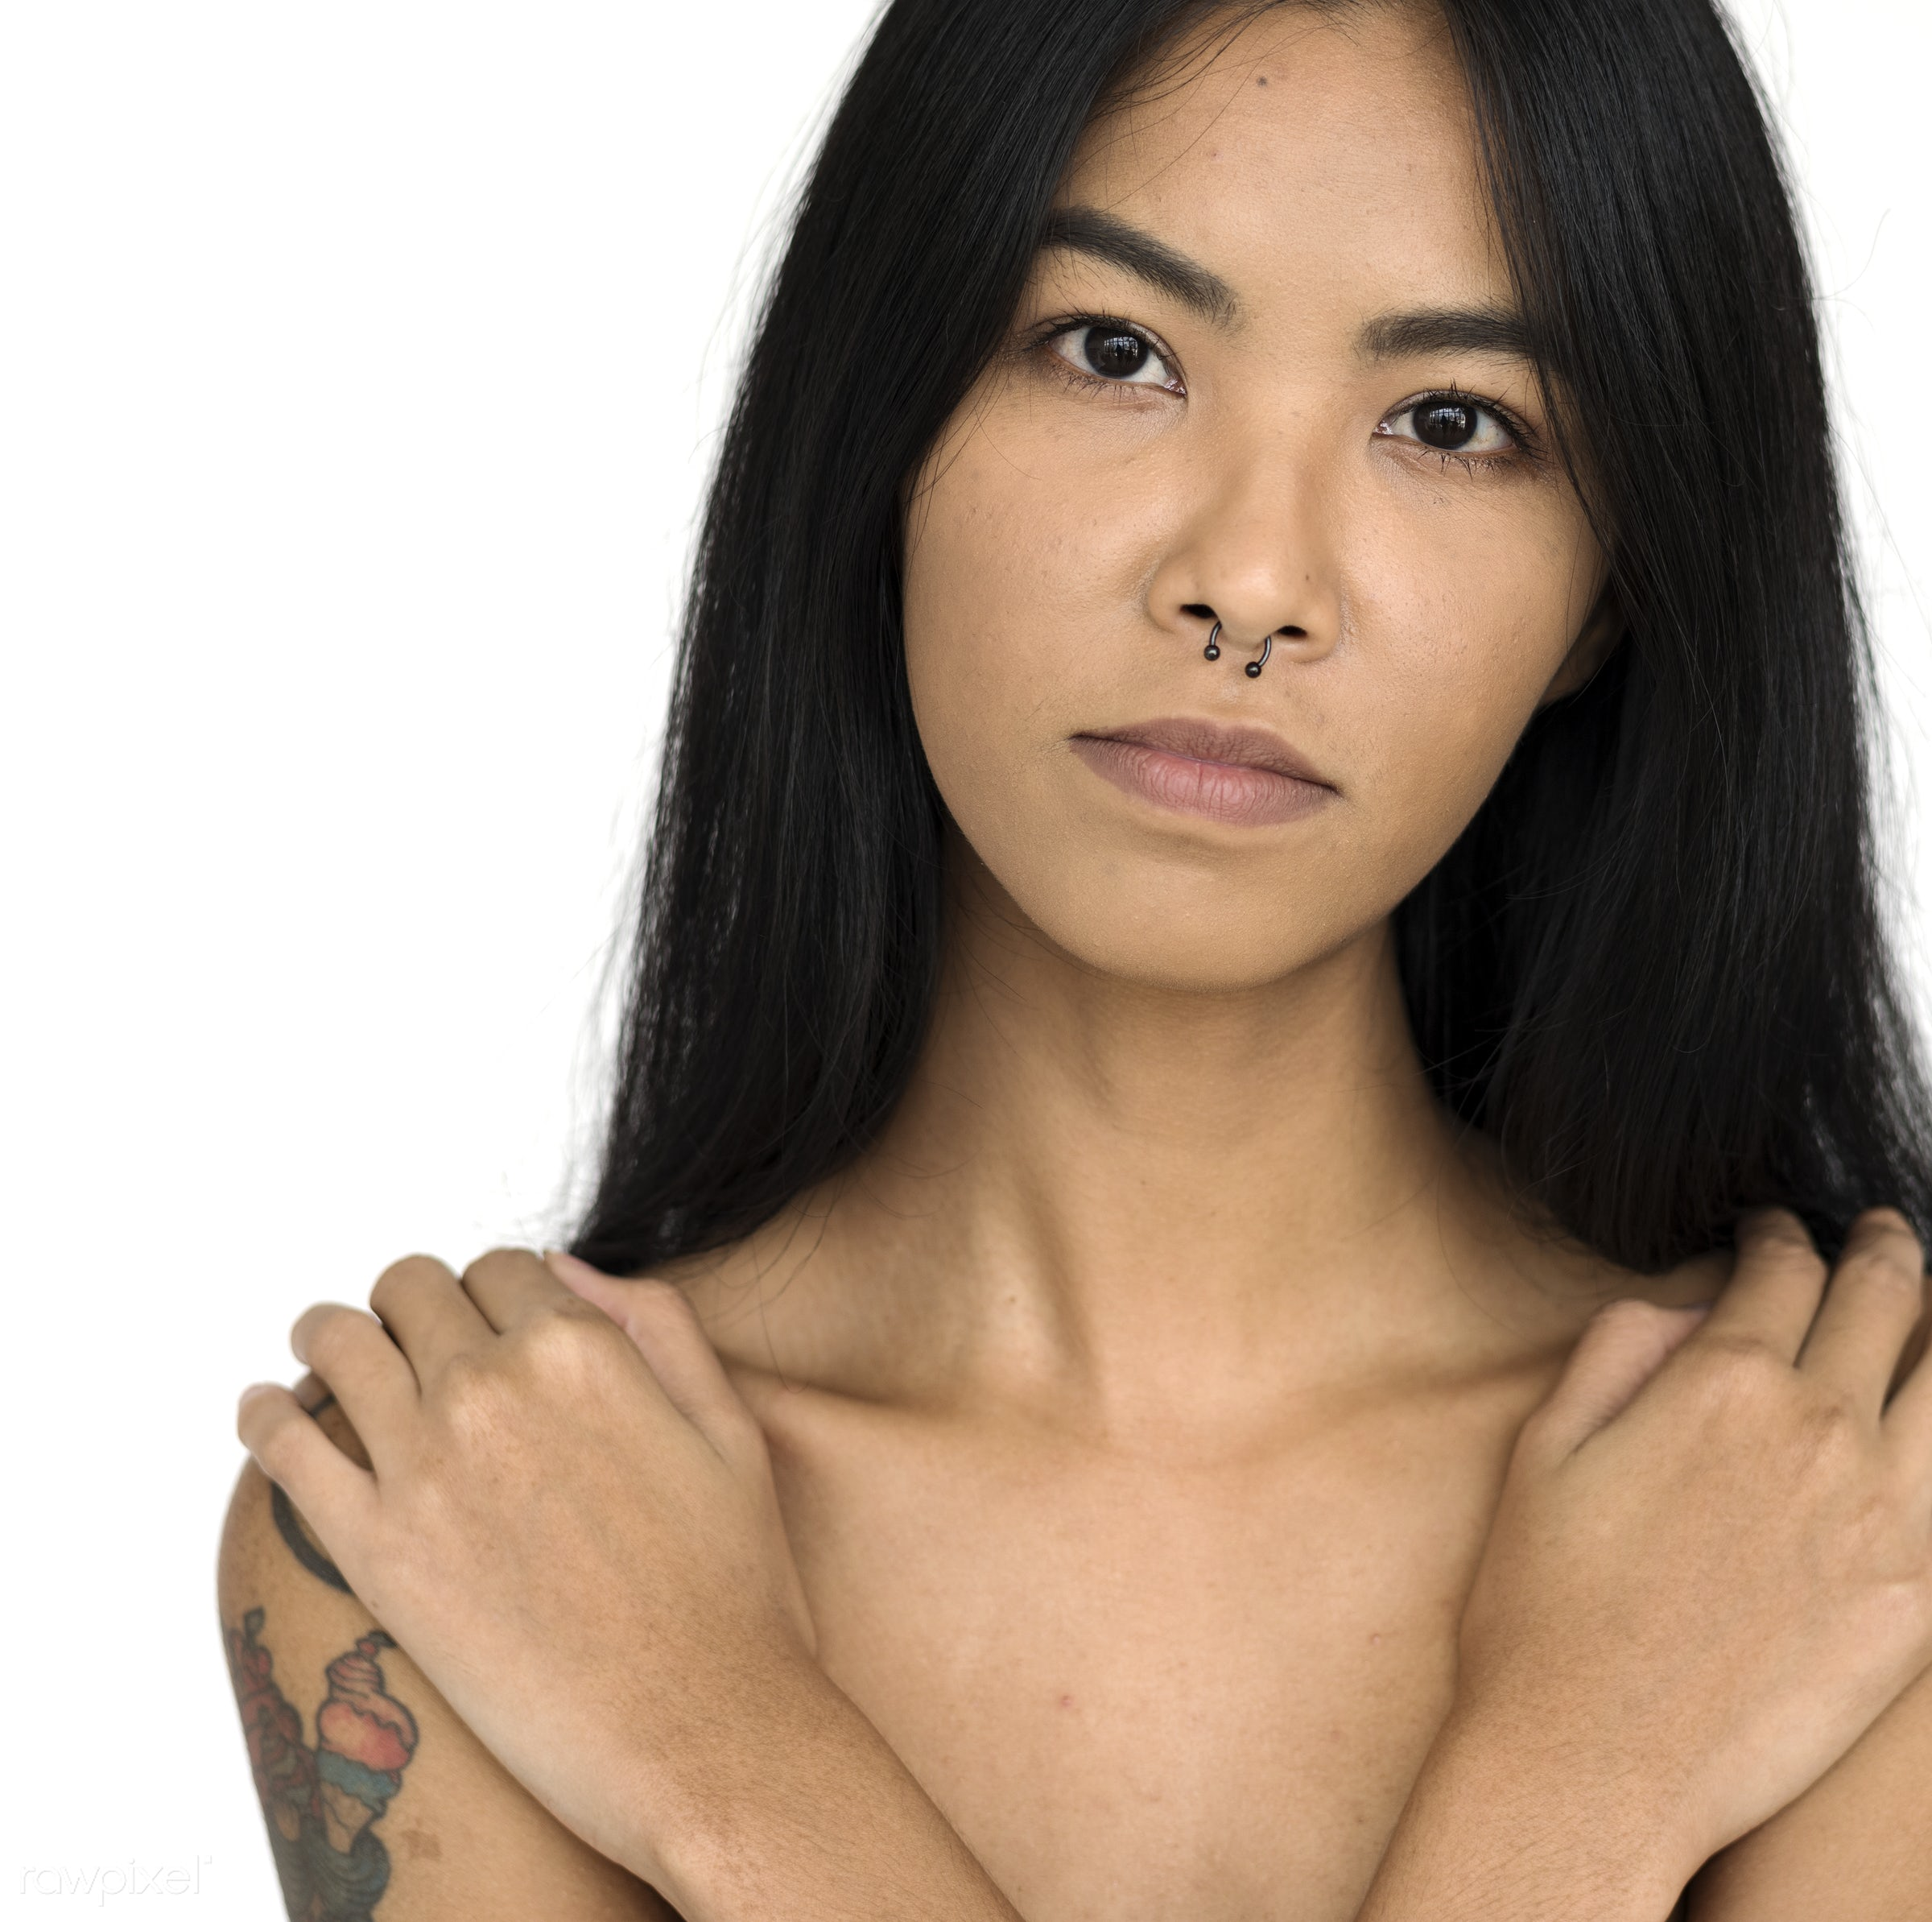 studio, expression, person, model, isolated on white, people, race, girl, style, woman, casual, lifestyle, tattoo, isolated...